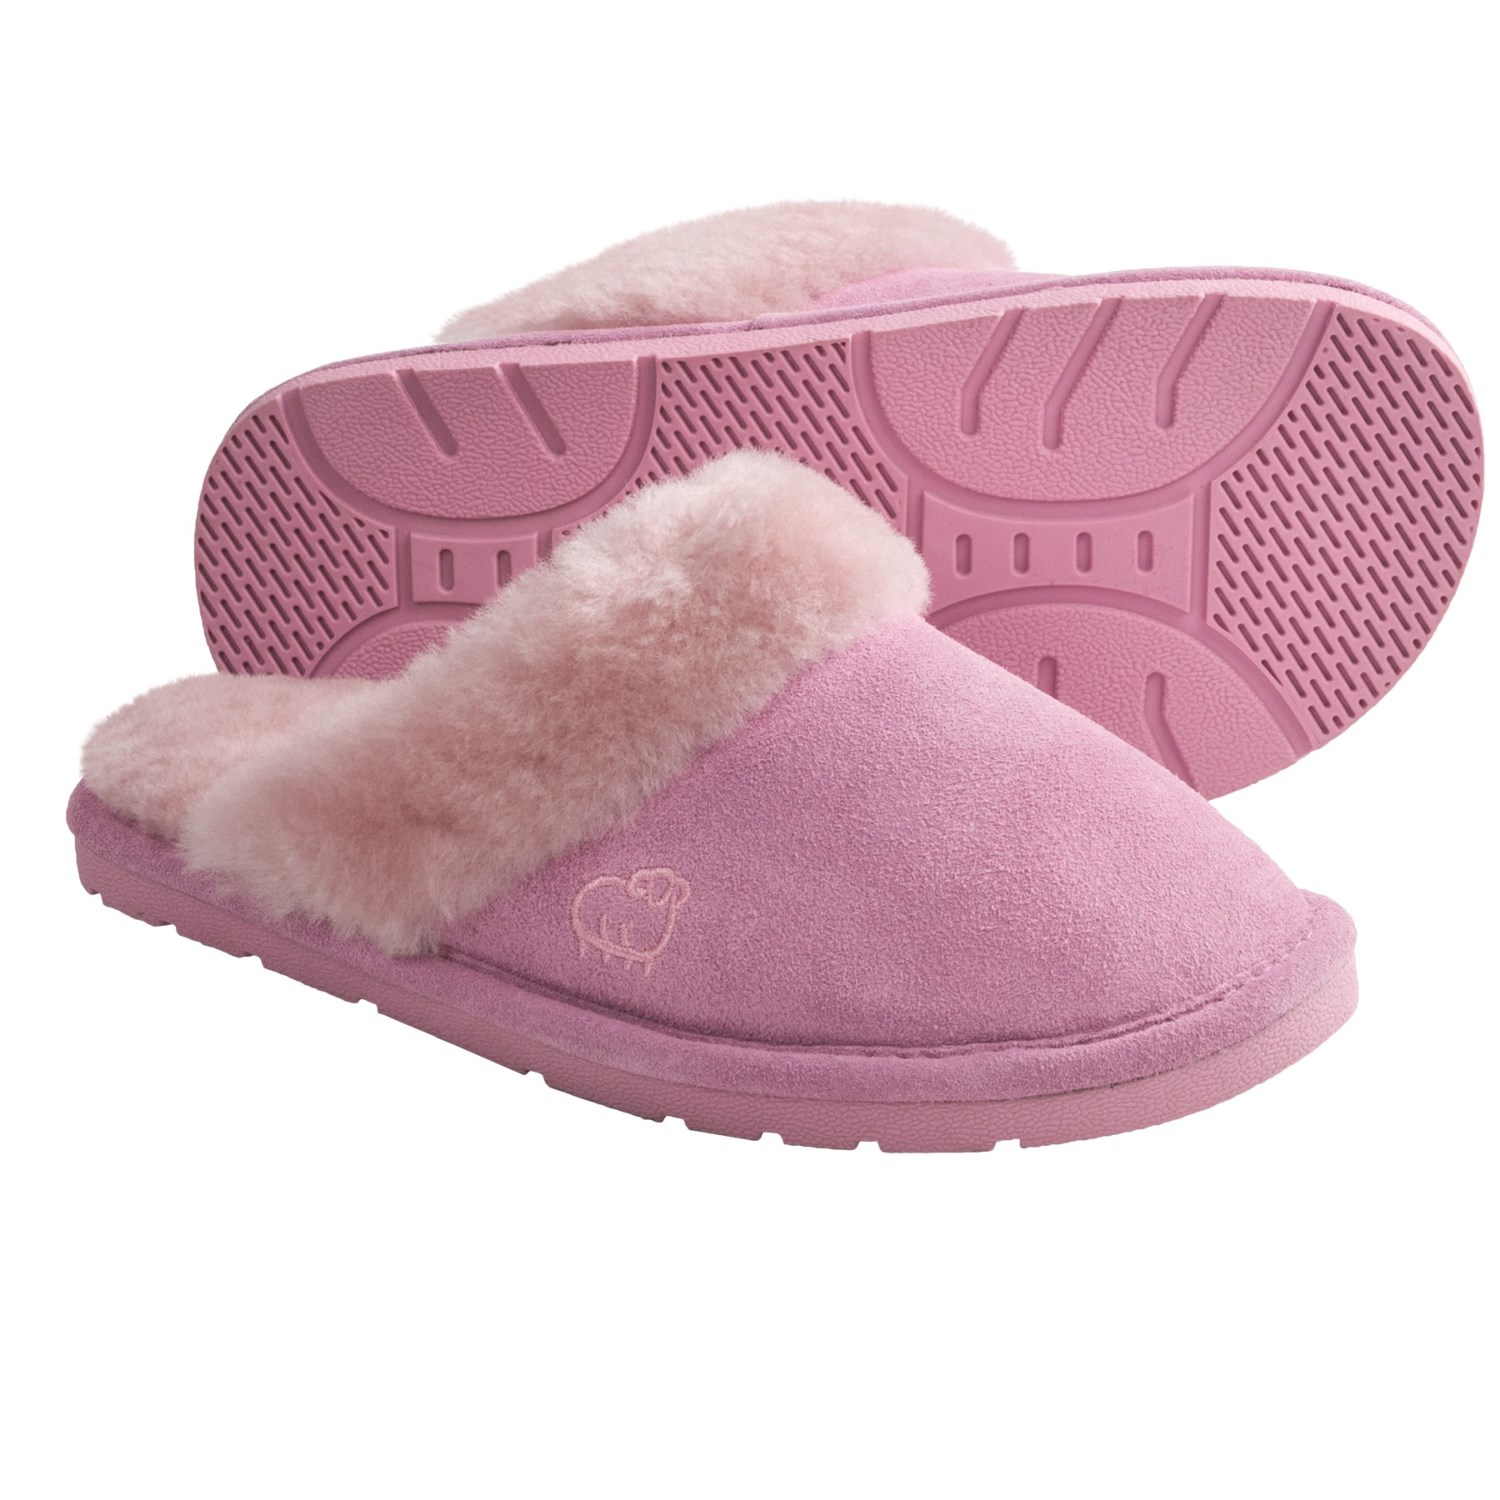 Christmas Slippers, Justdolife Winter warm Plush Cute Elk Non-slip House Home Indoor Slippers Slip-on Shoes for Women Girls Boys Kids See Details Product - Cute Panda Slippers Plush Cotton Cute Funny Soft Warm Comfortable Indoor Bedroom Shoe For Big Kids & Women With Footpads New.